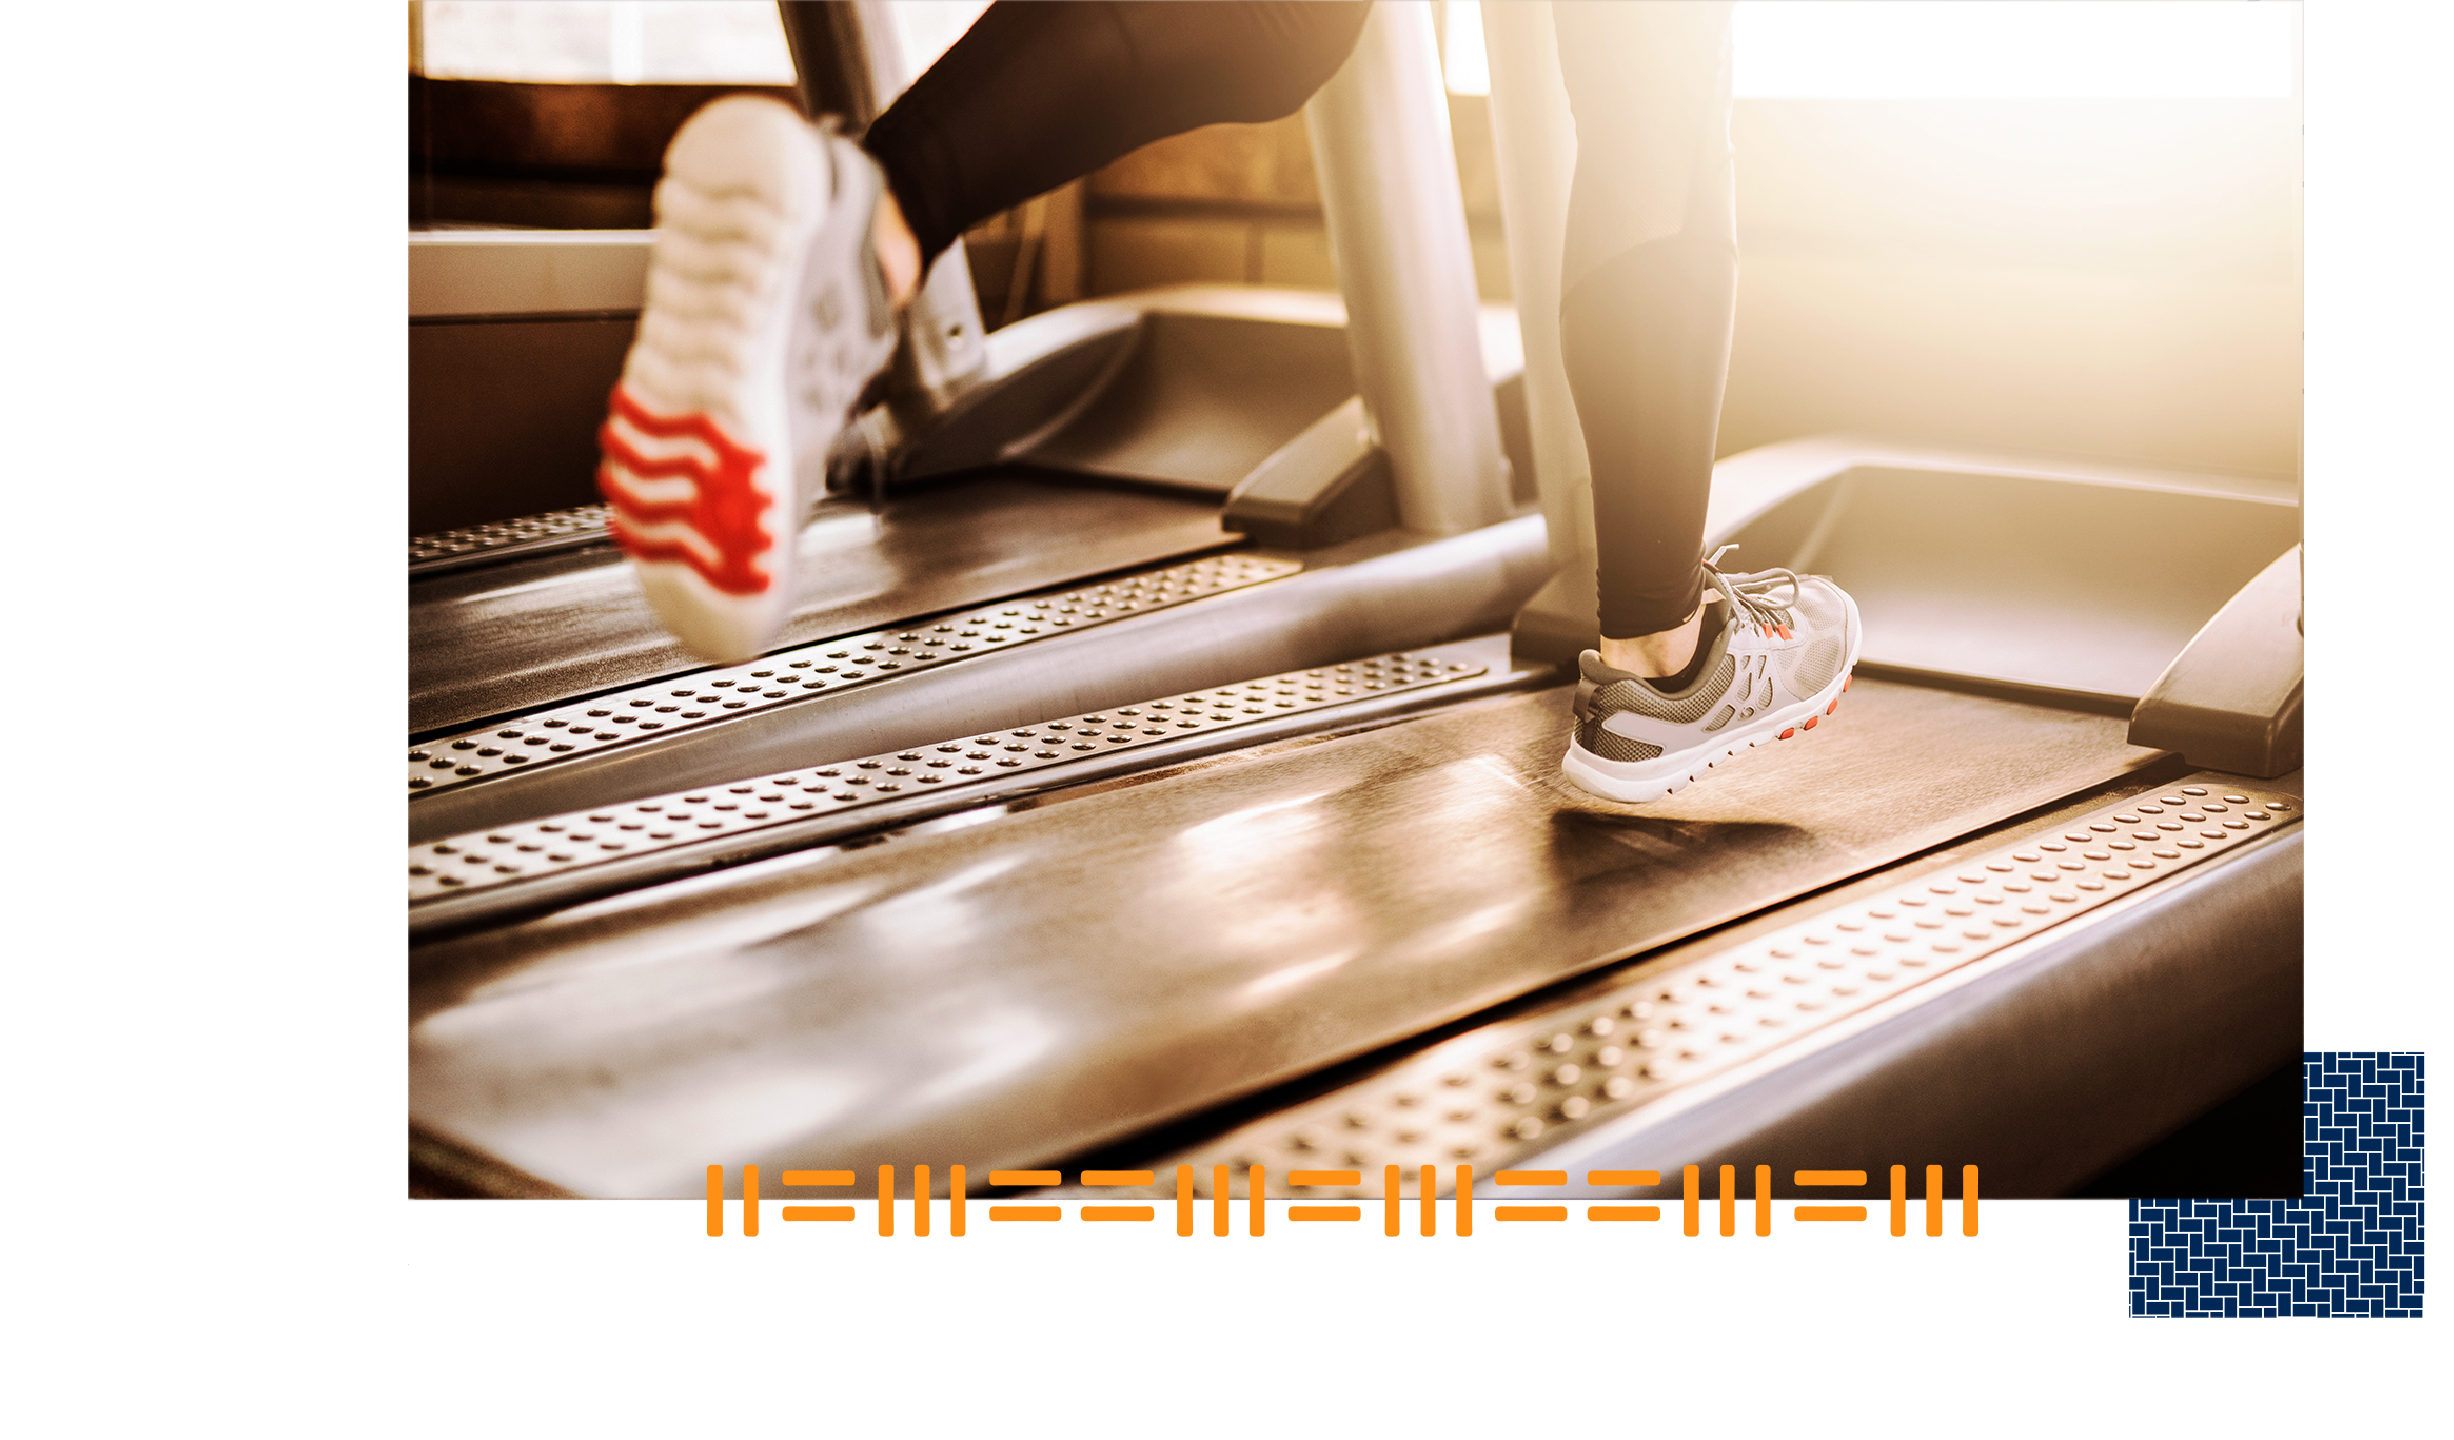 FITNESS CENTER - Residents of The Longview will enjoy access to a state-of-the-art onsite fitness center. Live steps from the gym + save on costly gym fees.